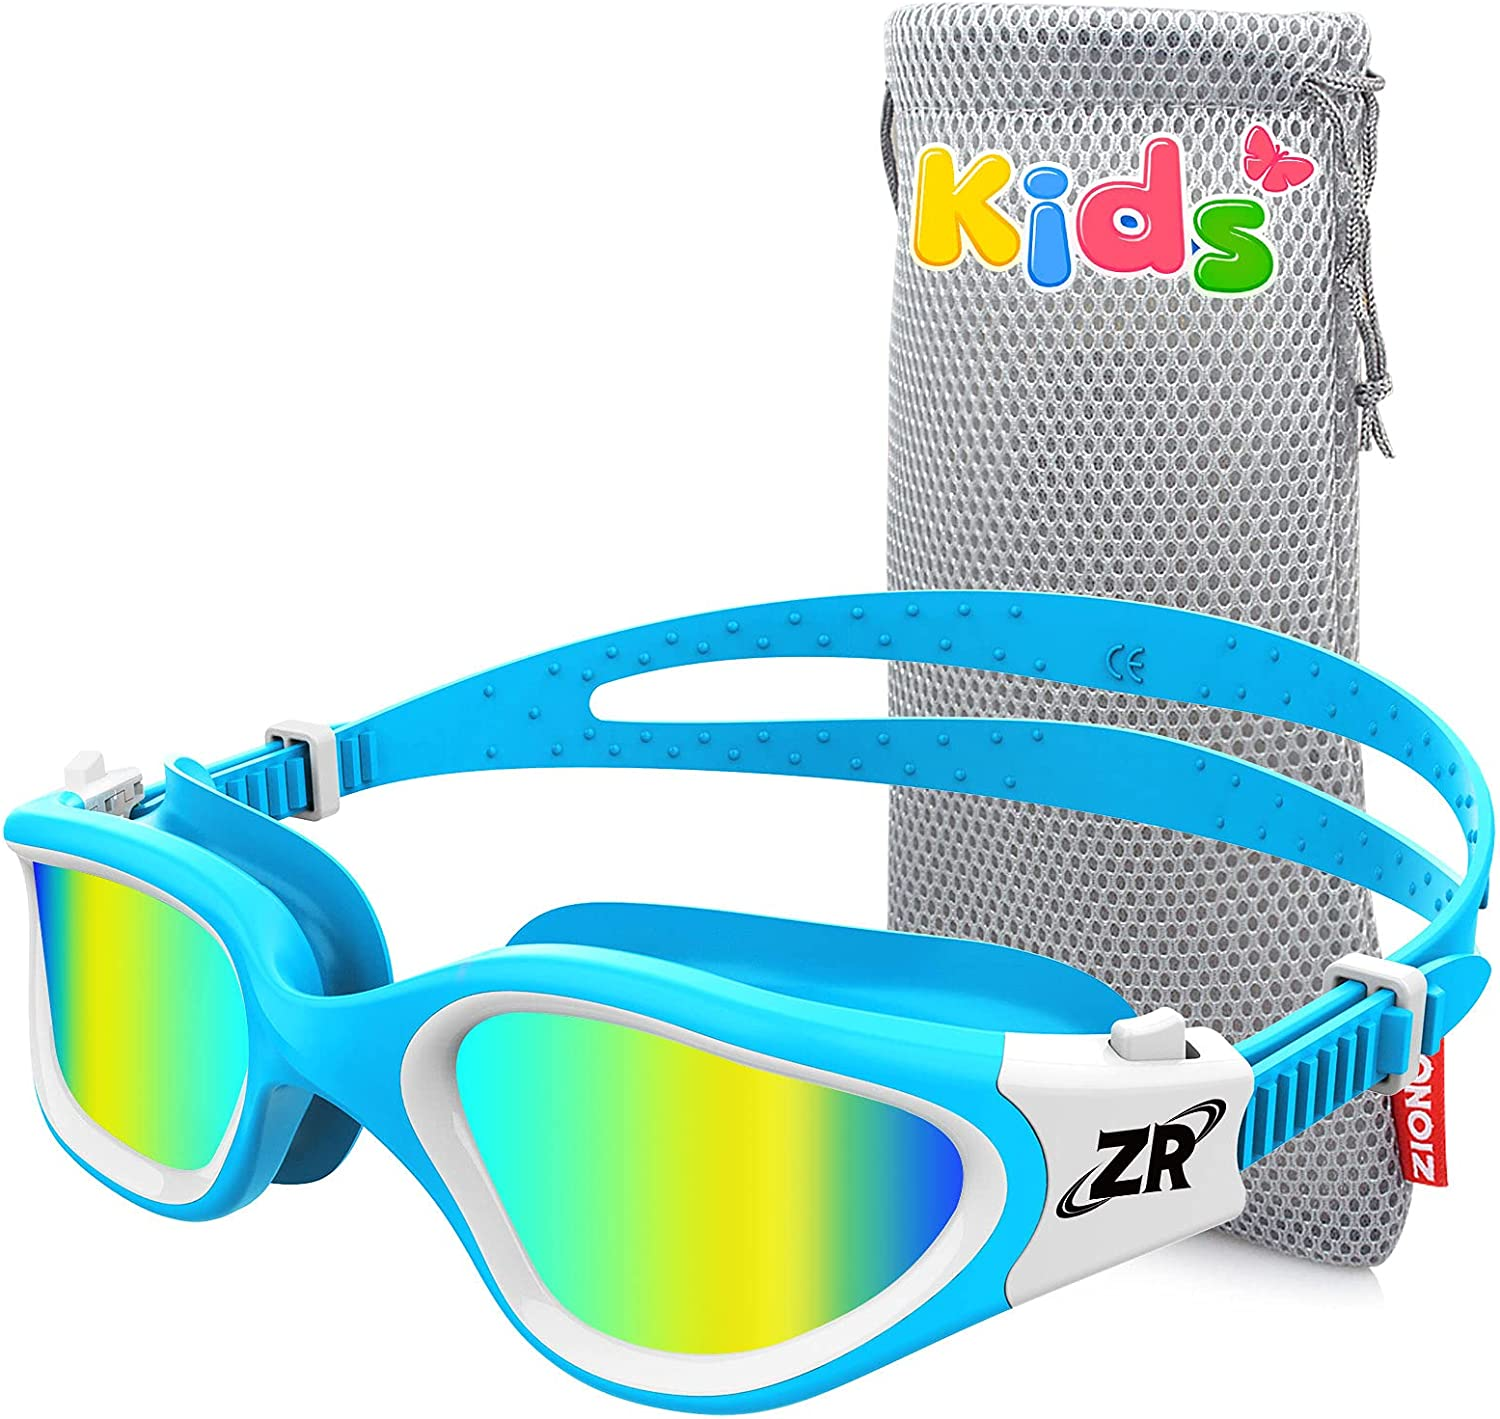 ZIONOR Kids Swim Goggles, G1MINI Polarized Swimming Goggles Comfort for Age 6-14, UV Protection Anti-Fog Adjustable Strap Fit for Child Boys Girls (Gold Lens) : Sports & Outdoors